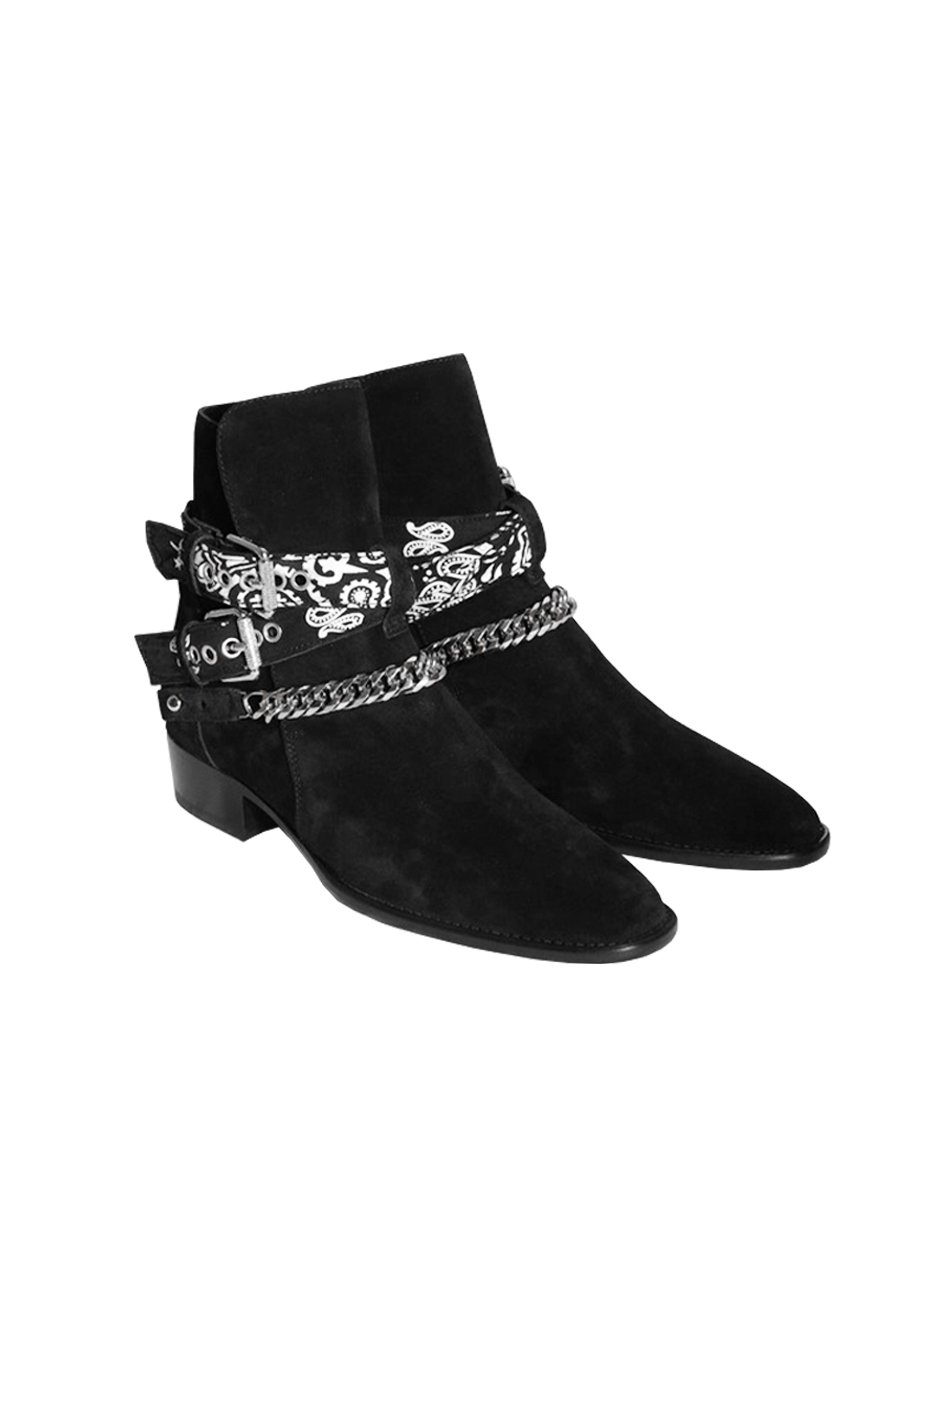 BANDANA BUCKLE BOOT